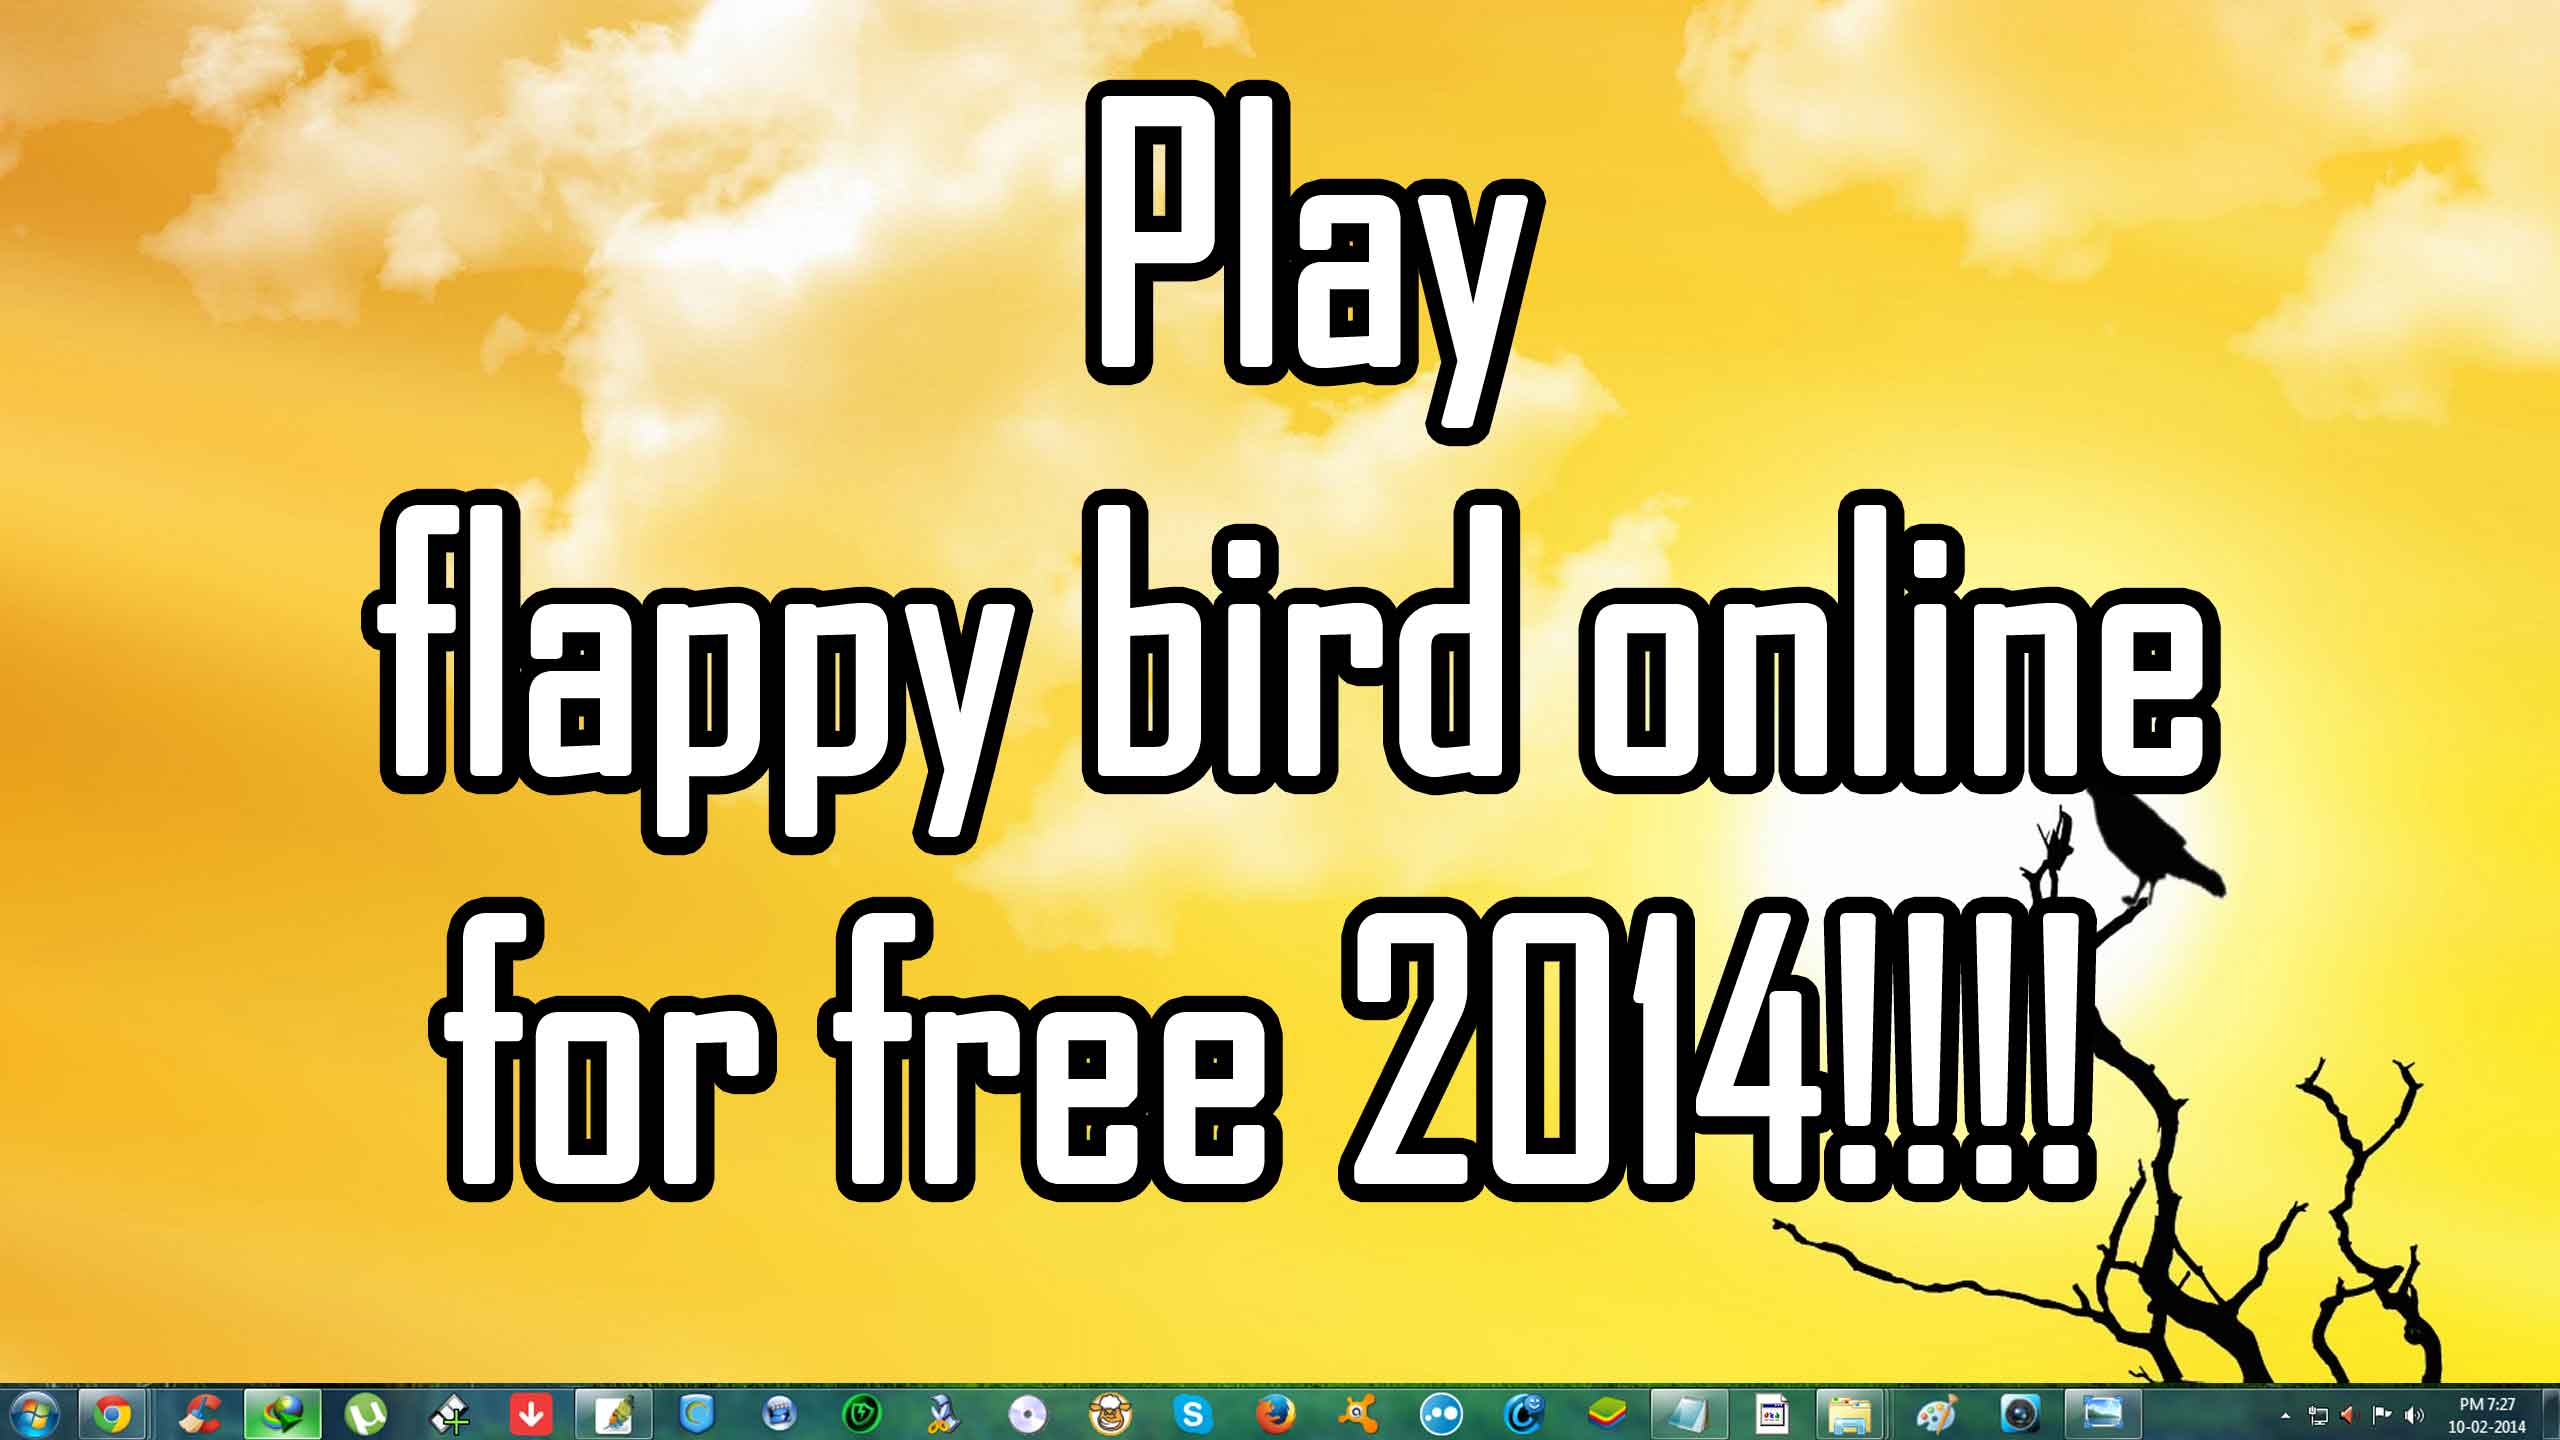 How to play flappy bird online for free 2014